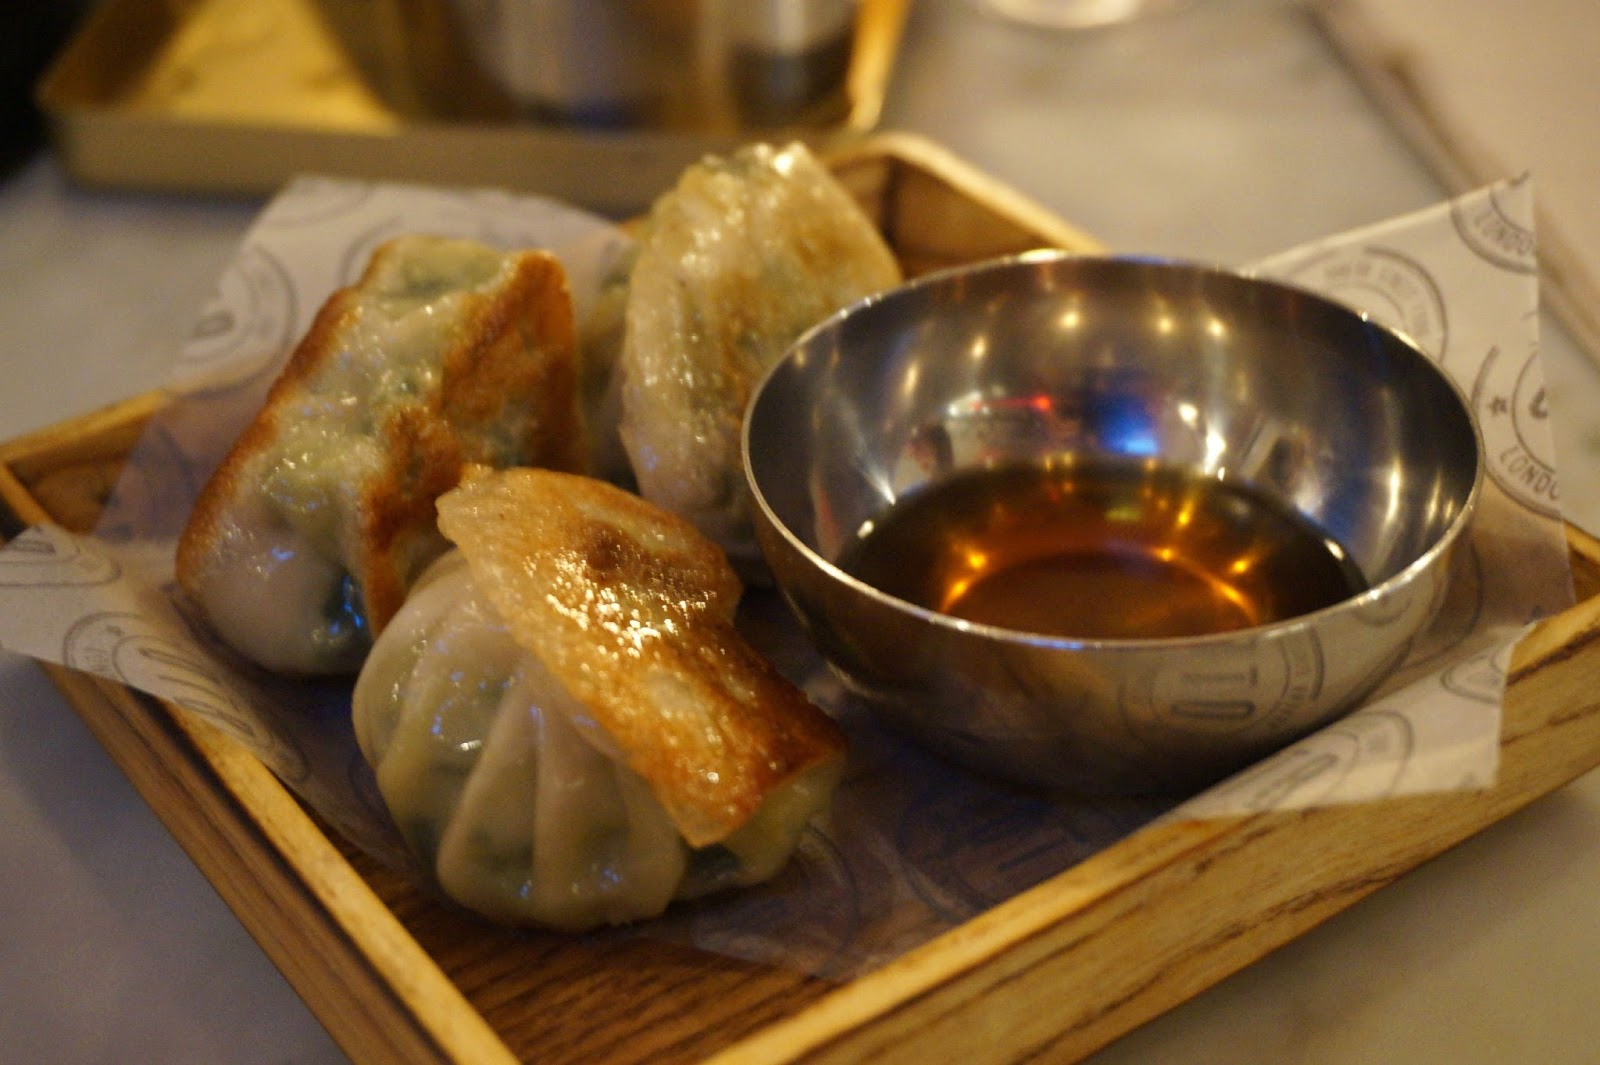 Korean steamed dumplings